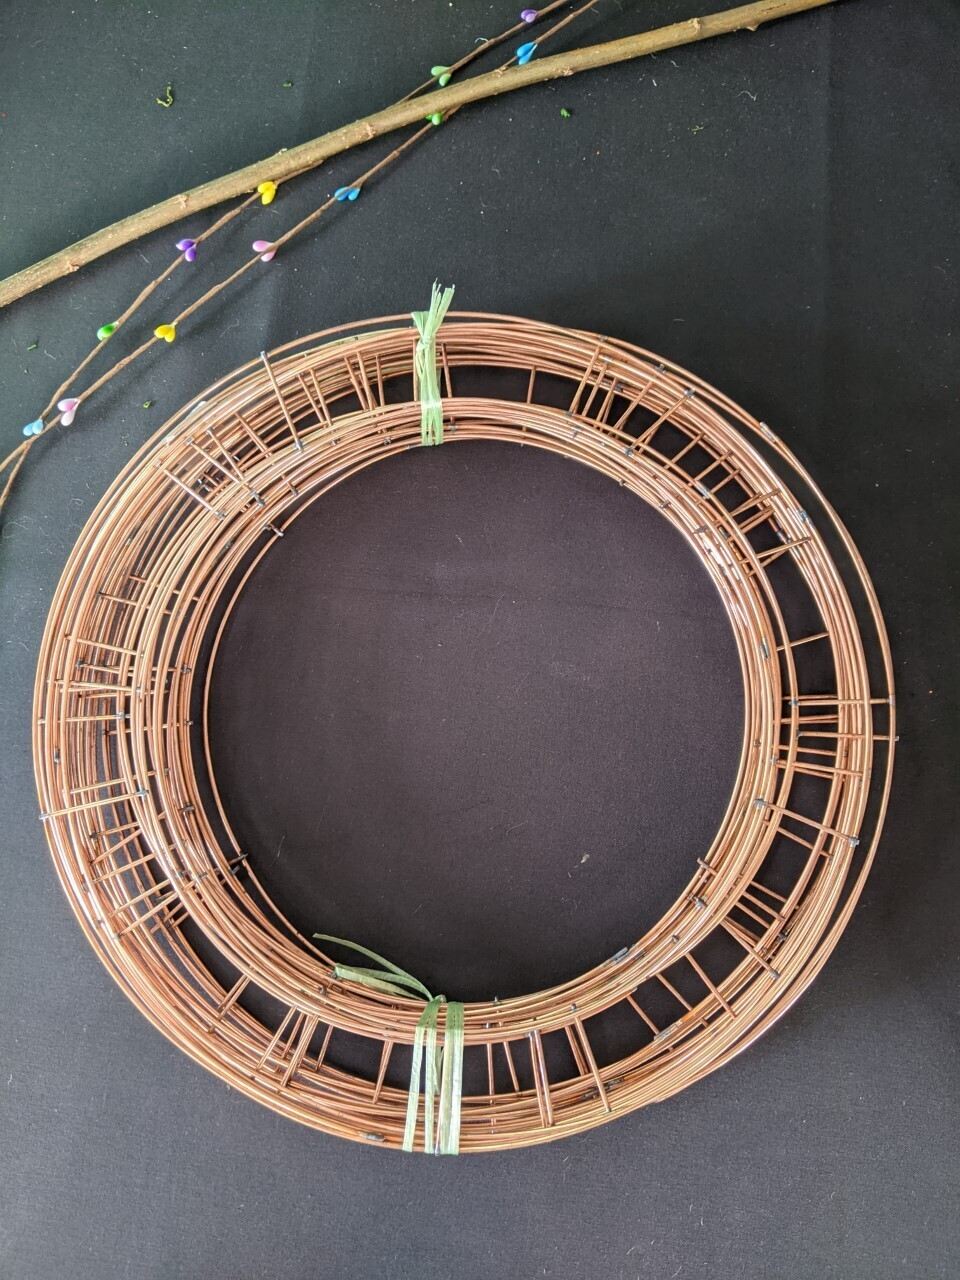 Wreath base trial selection pack including binding wire and post